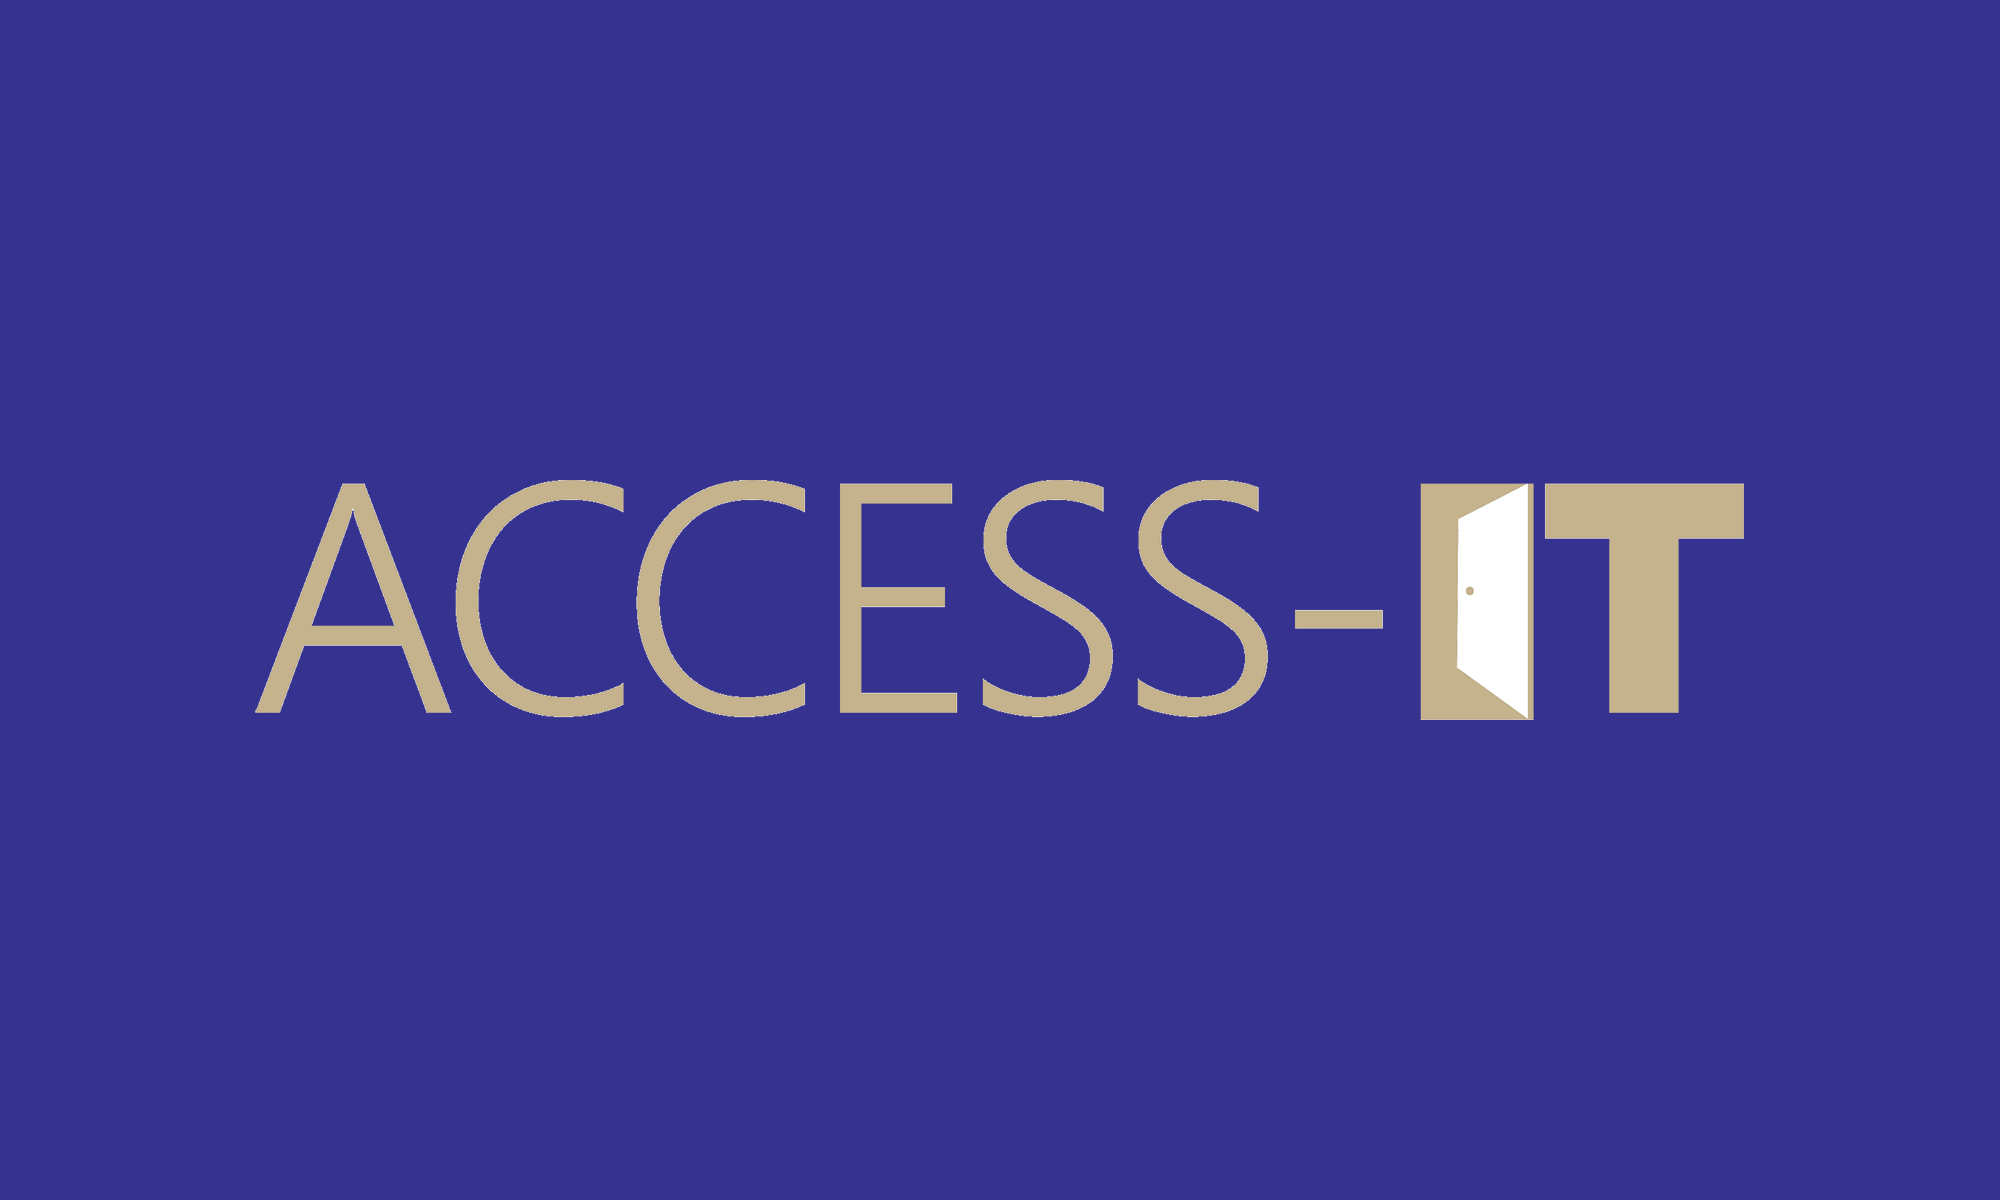 ACCESS-IT: A Context for Creating Employment Success in IT for Individuals with Autism